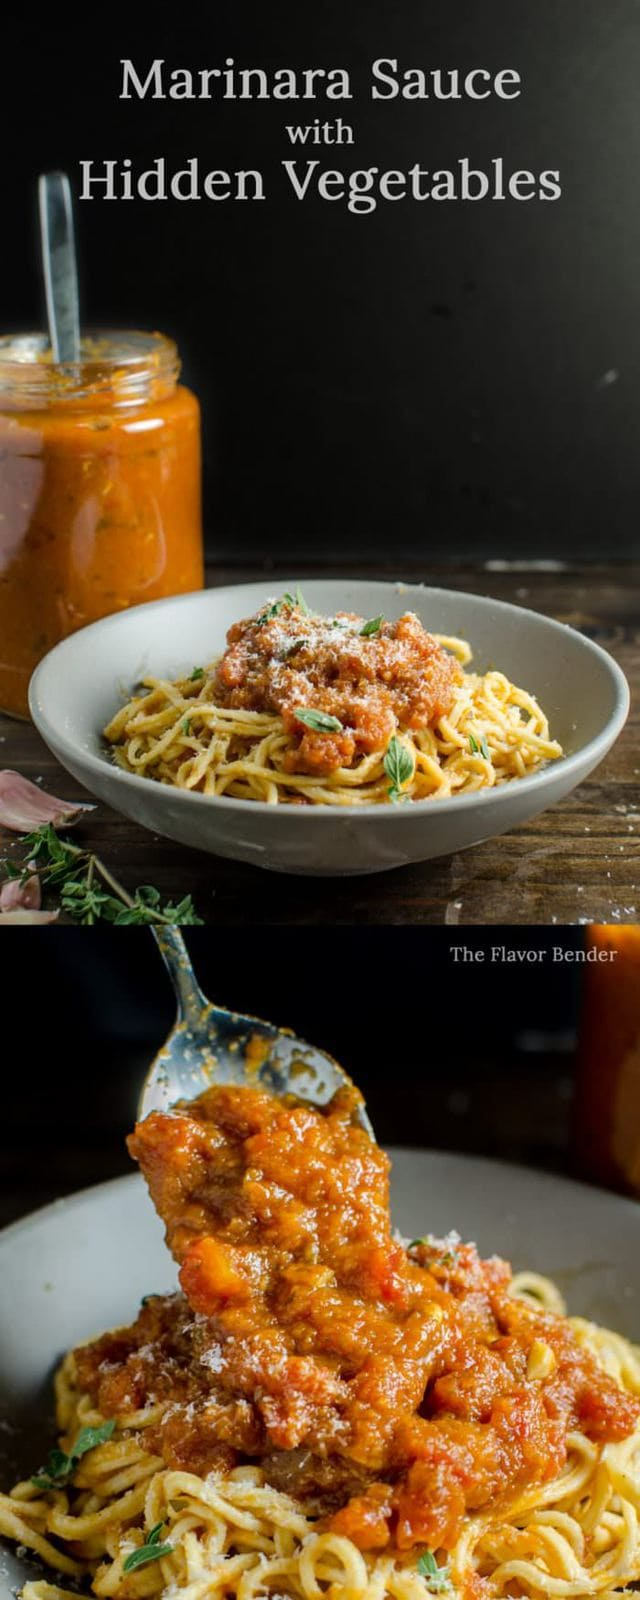 Marinara Sauce with Hidden Vegetables - This Marinara Sauce can be used as Pasta Sauce, Base for Bolognese, Dipping Sauce OR Pizza Sauce! So Versatile and packed with flavor and HEAPS of nutrition!